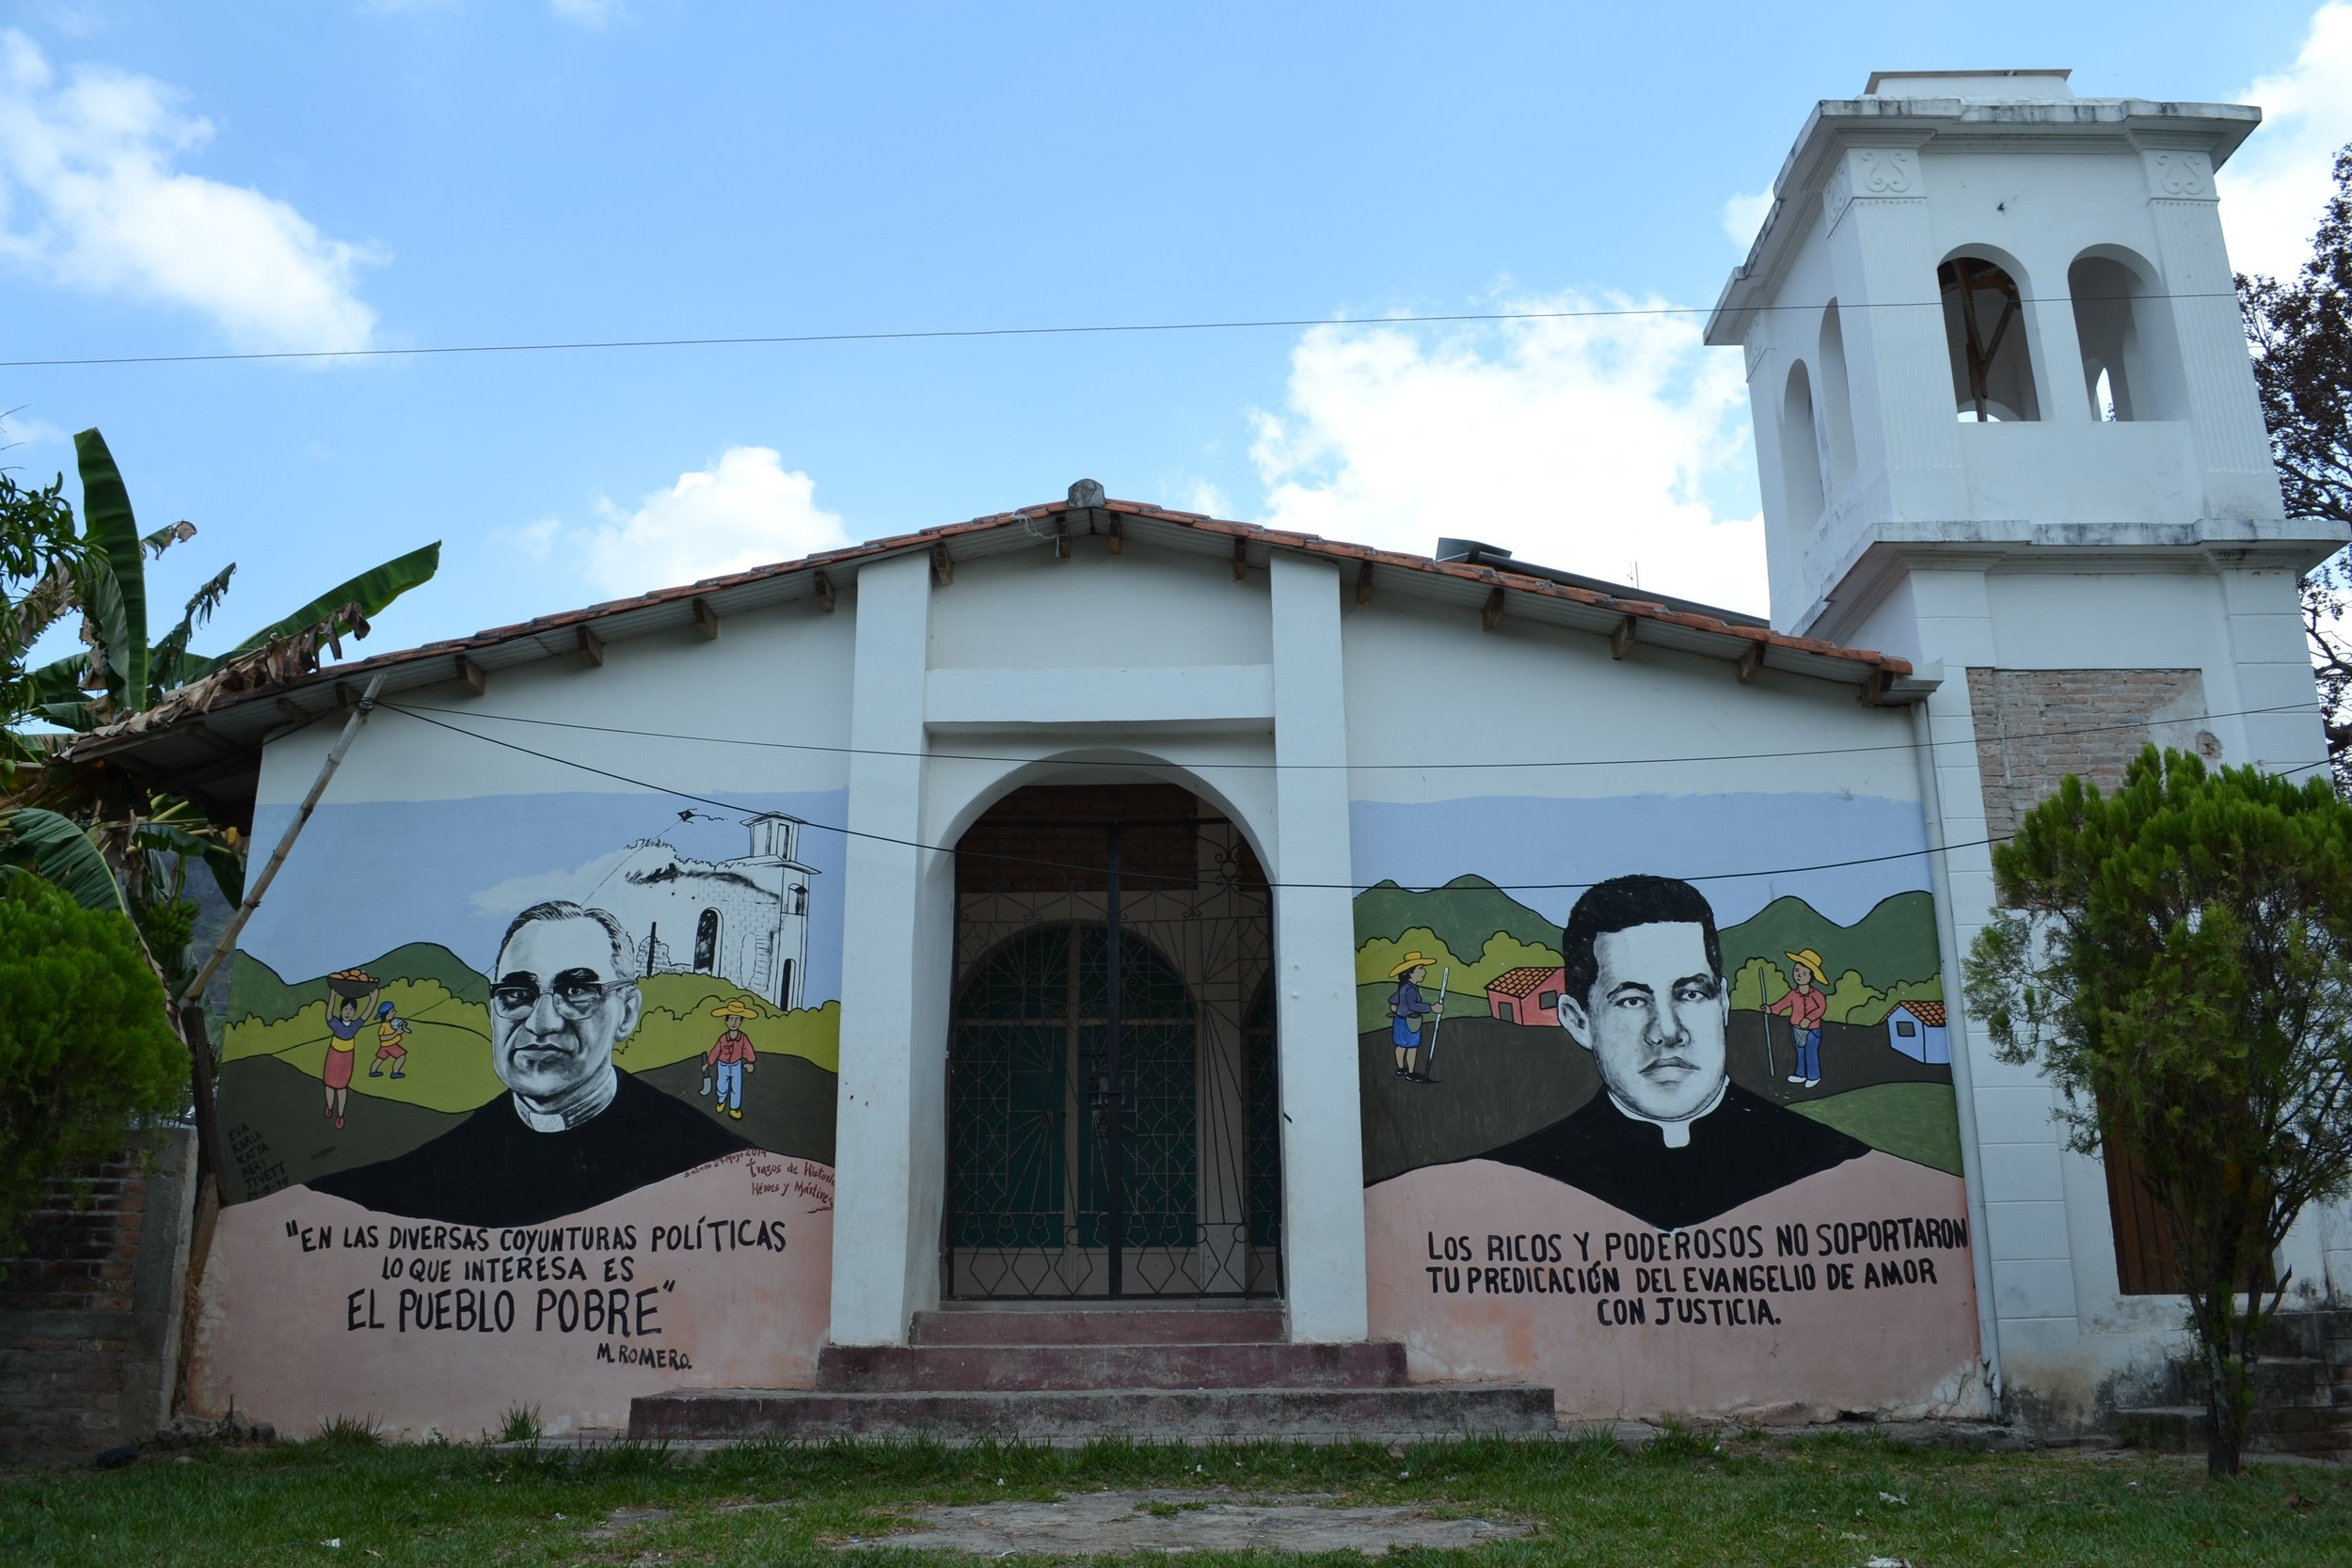 Mural of the assassinated Monsignor Oscar Romero (1917-1980) and another priest who was assassinated as well.